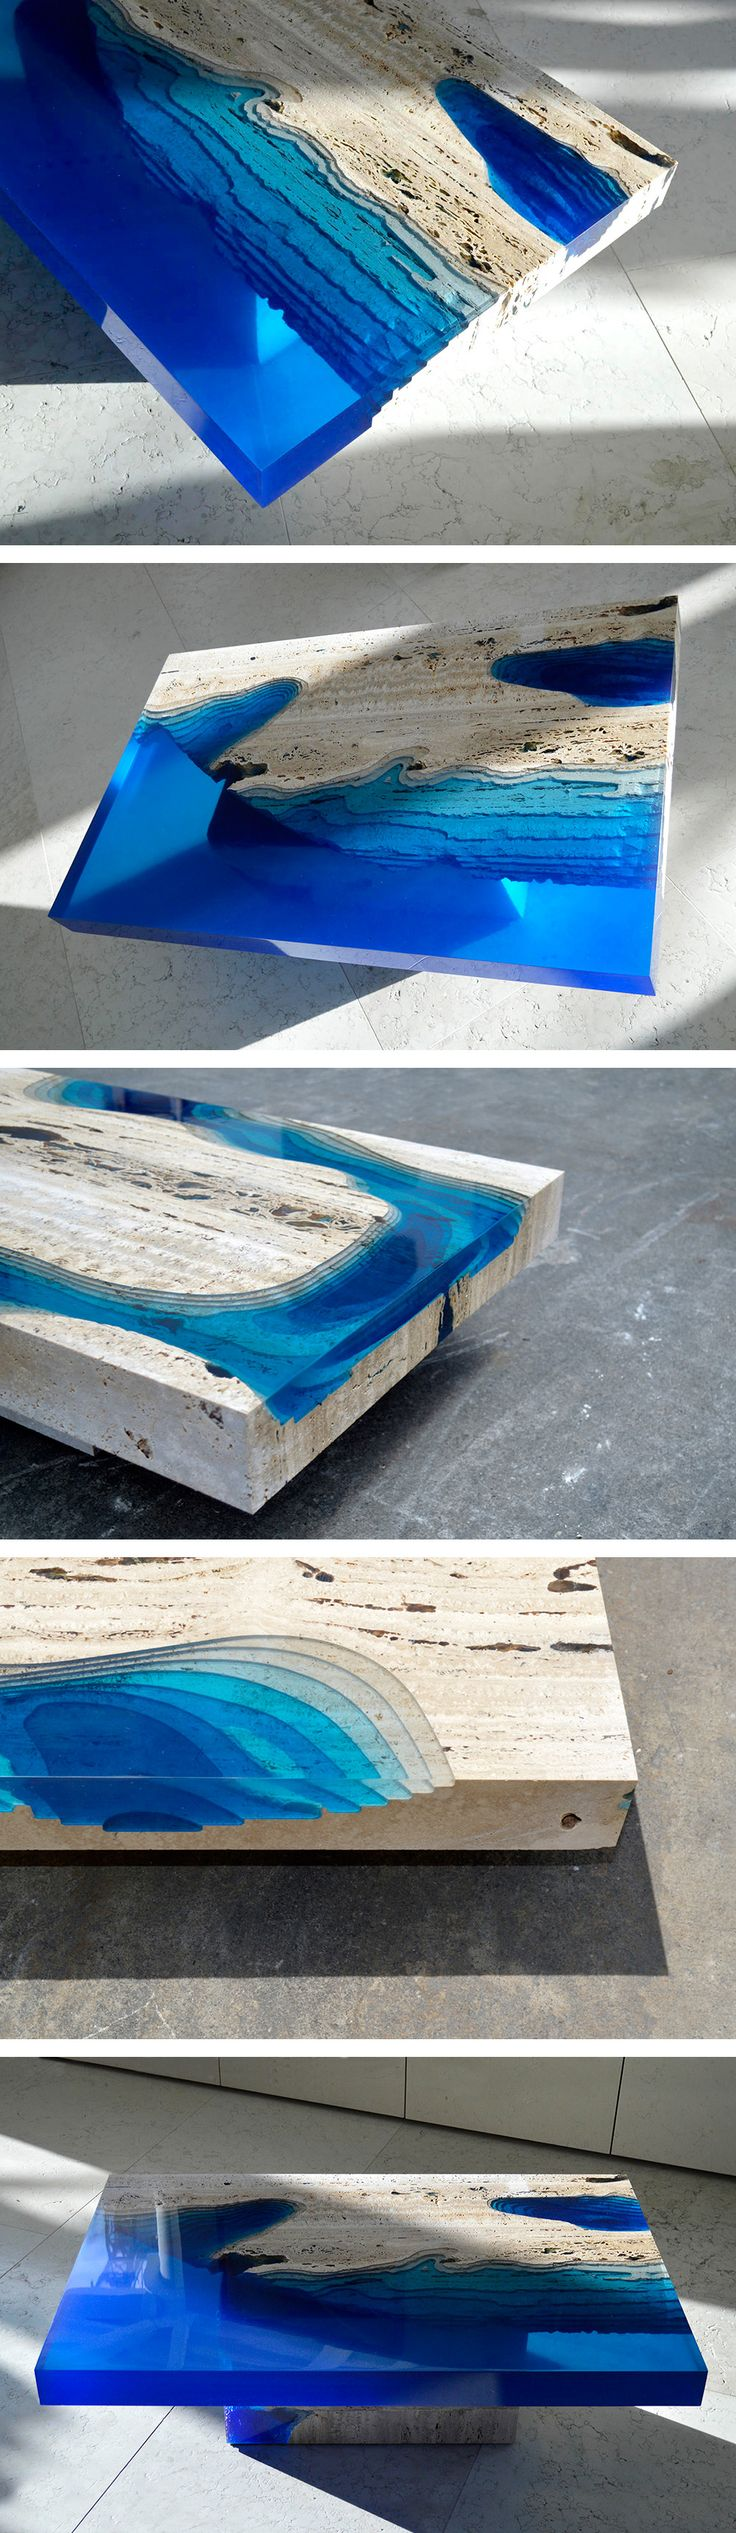 Ok so its not quite glass, but it is stunning and a very similar style of design to other pins on this board!   Cut Travertine Marble and Resin Merge to Create 'Lagoon' Tables